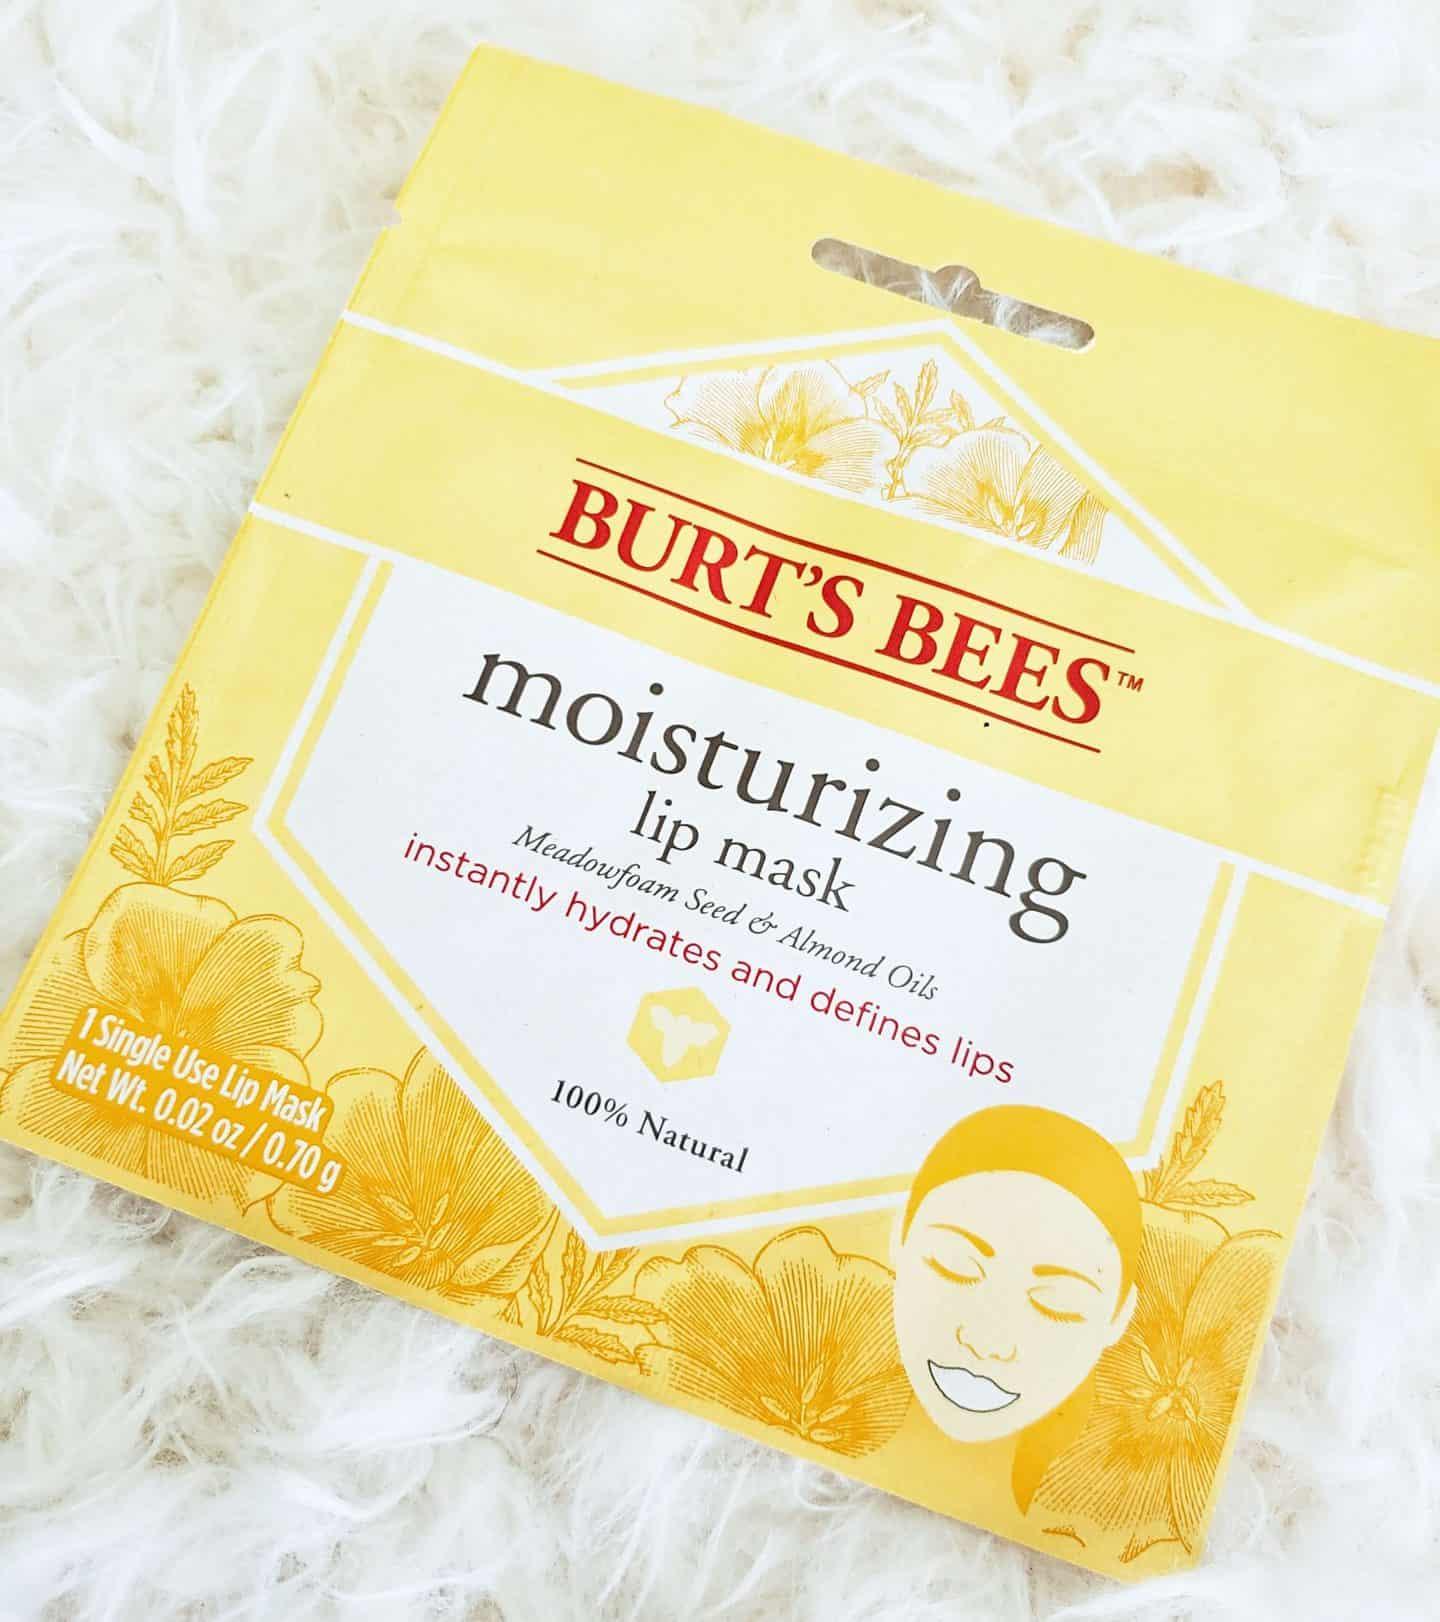 Back To College - Burt's Bees 5-Minute Beauty Routine